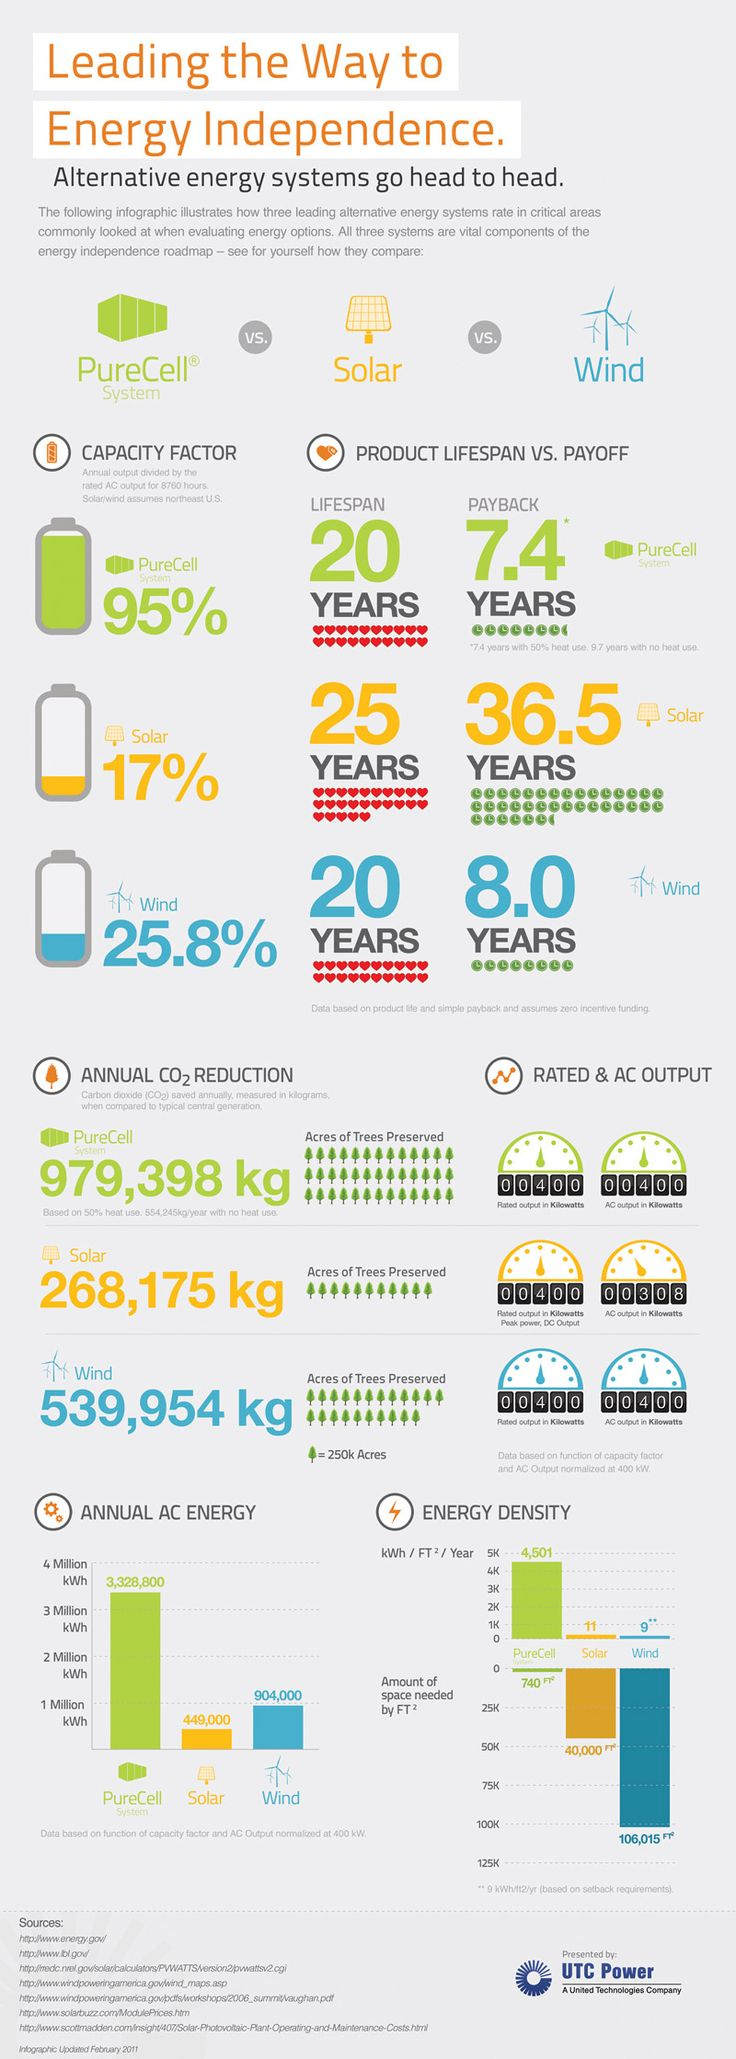 Alternative Energy http://www.utcpower.com/knowledge-library/infographic/alternative-energy-options-fuel-cell-wind-solar